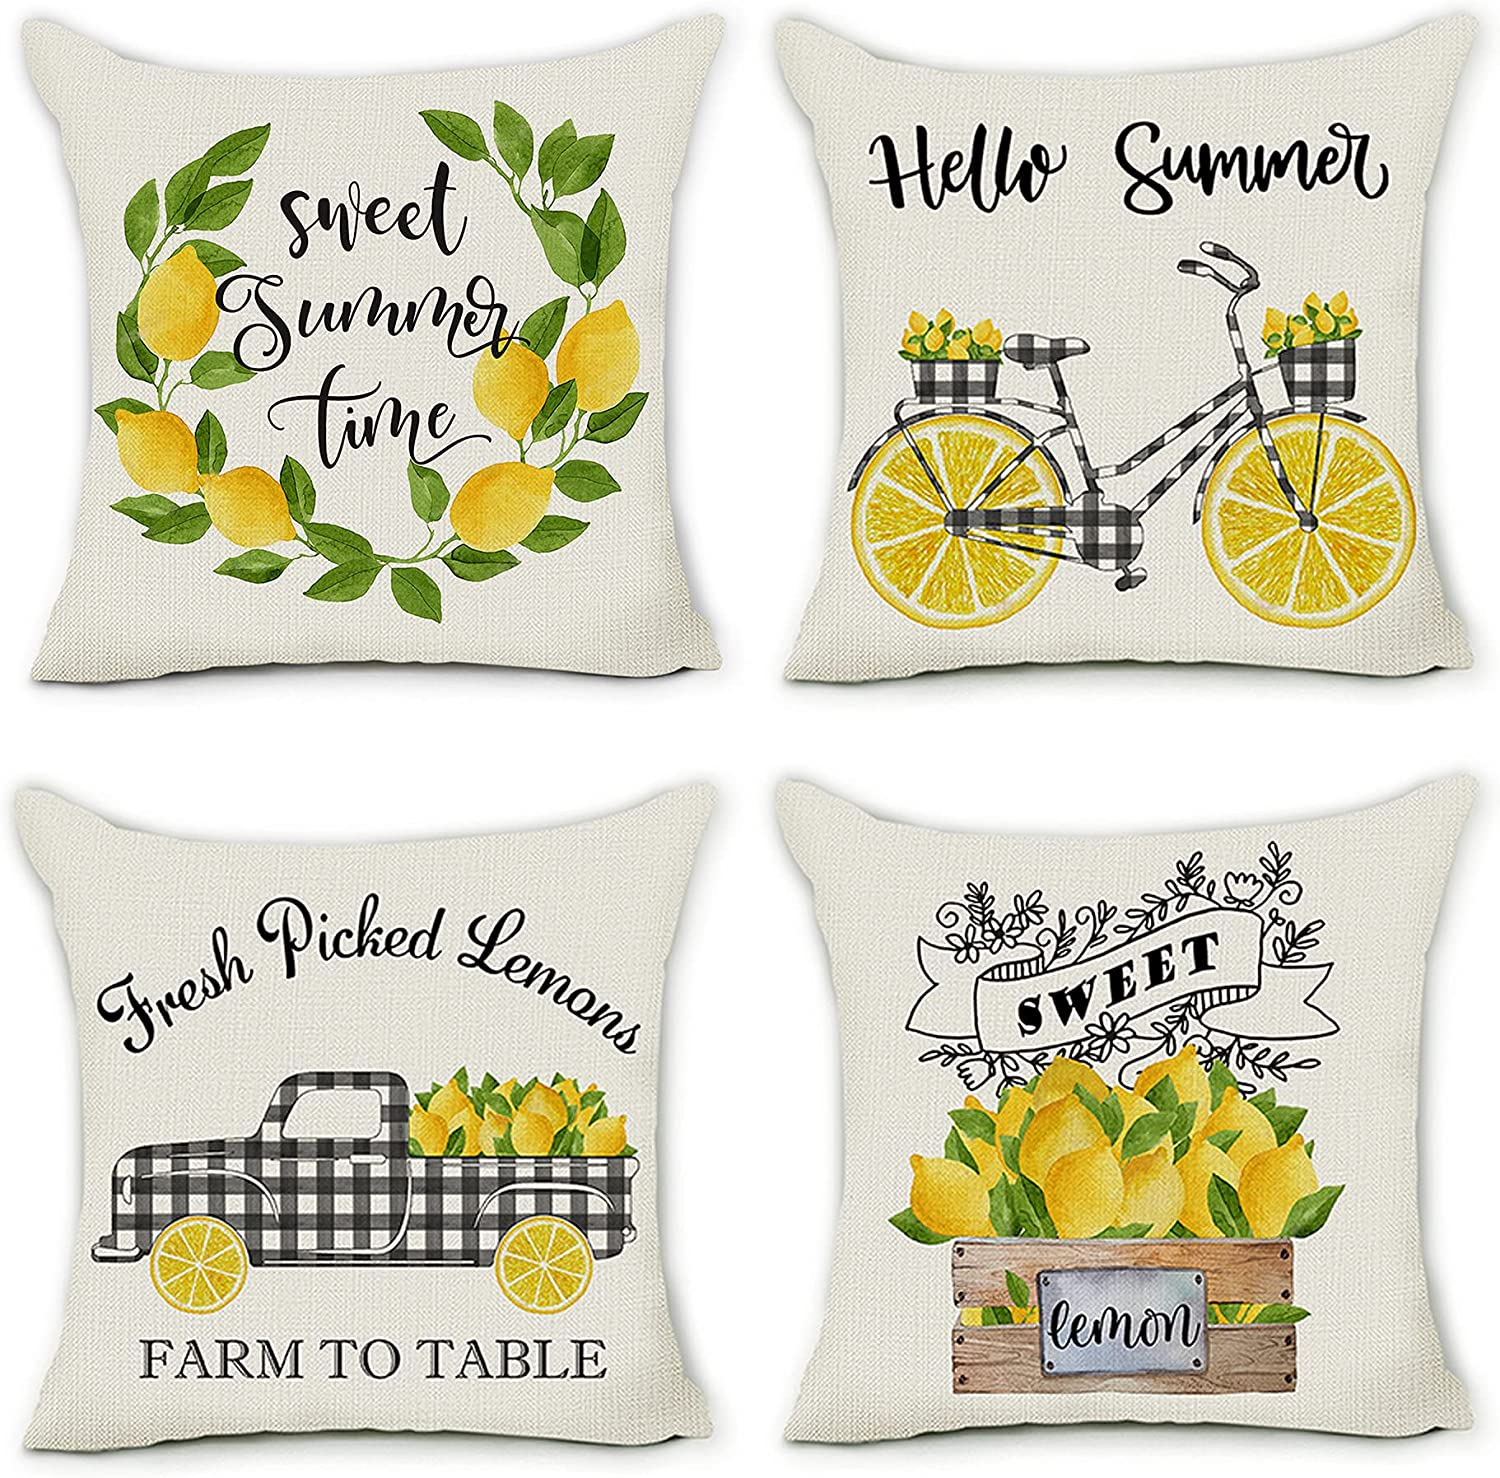 pinata Summer 2021 autumn and winter new Pillow Covers 18x18 Set Lemon Farmhouse of Max 63% OFF Throw 4